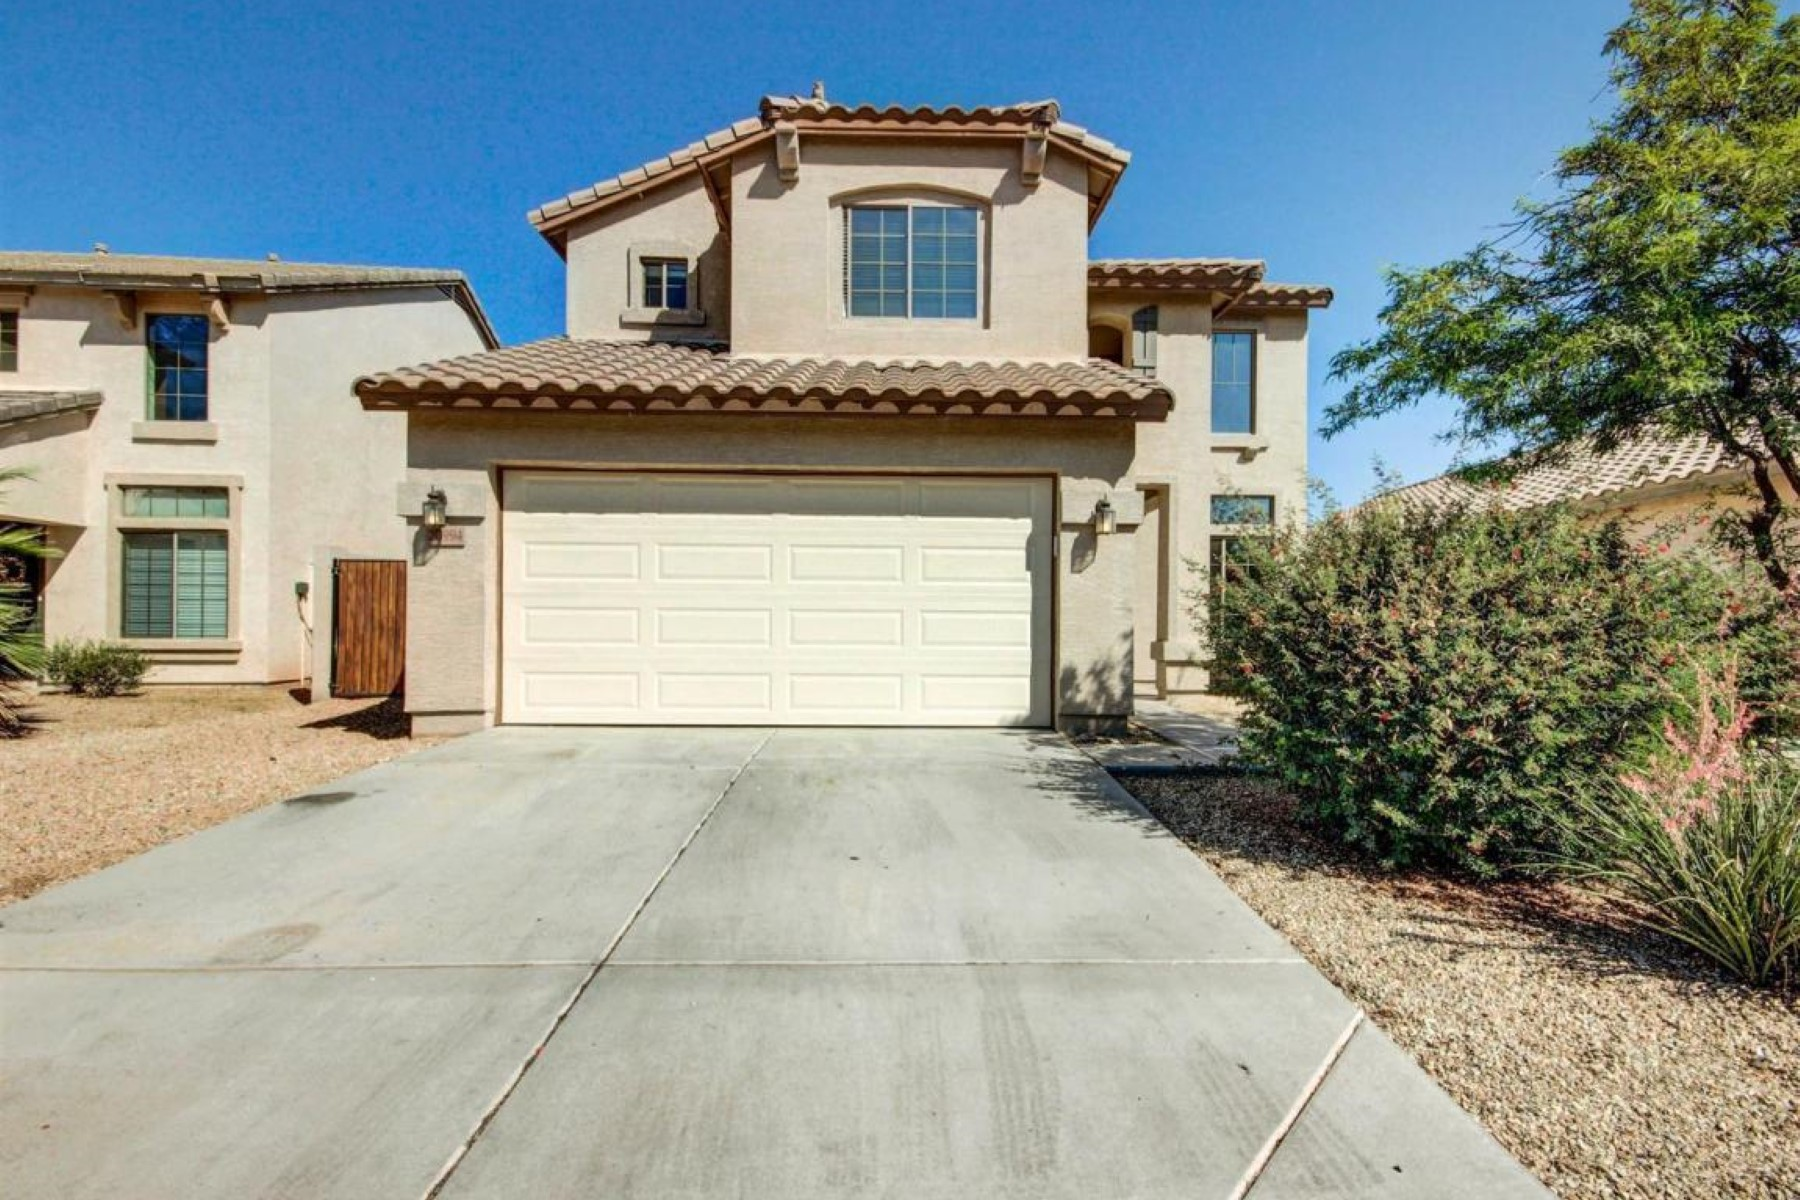 Single Family Home for Sale at Nestled in a fabulous community complete with a lake. 20994 N LEONA BLVD Maricopa, Arizona 85138 United States